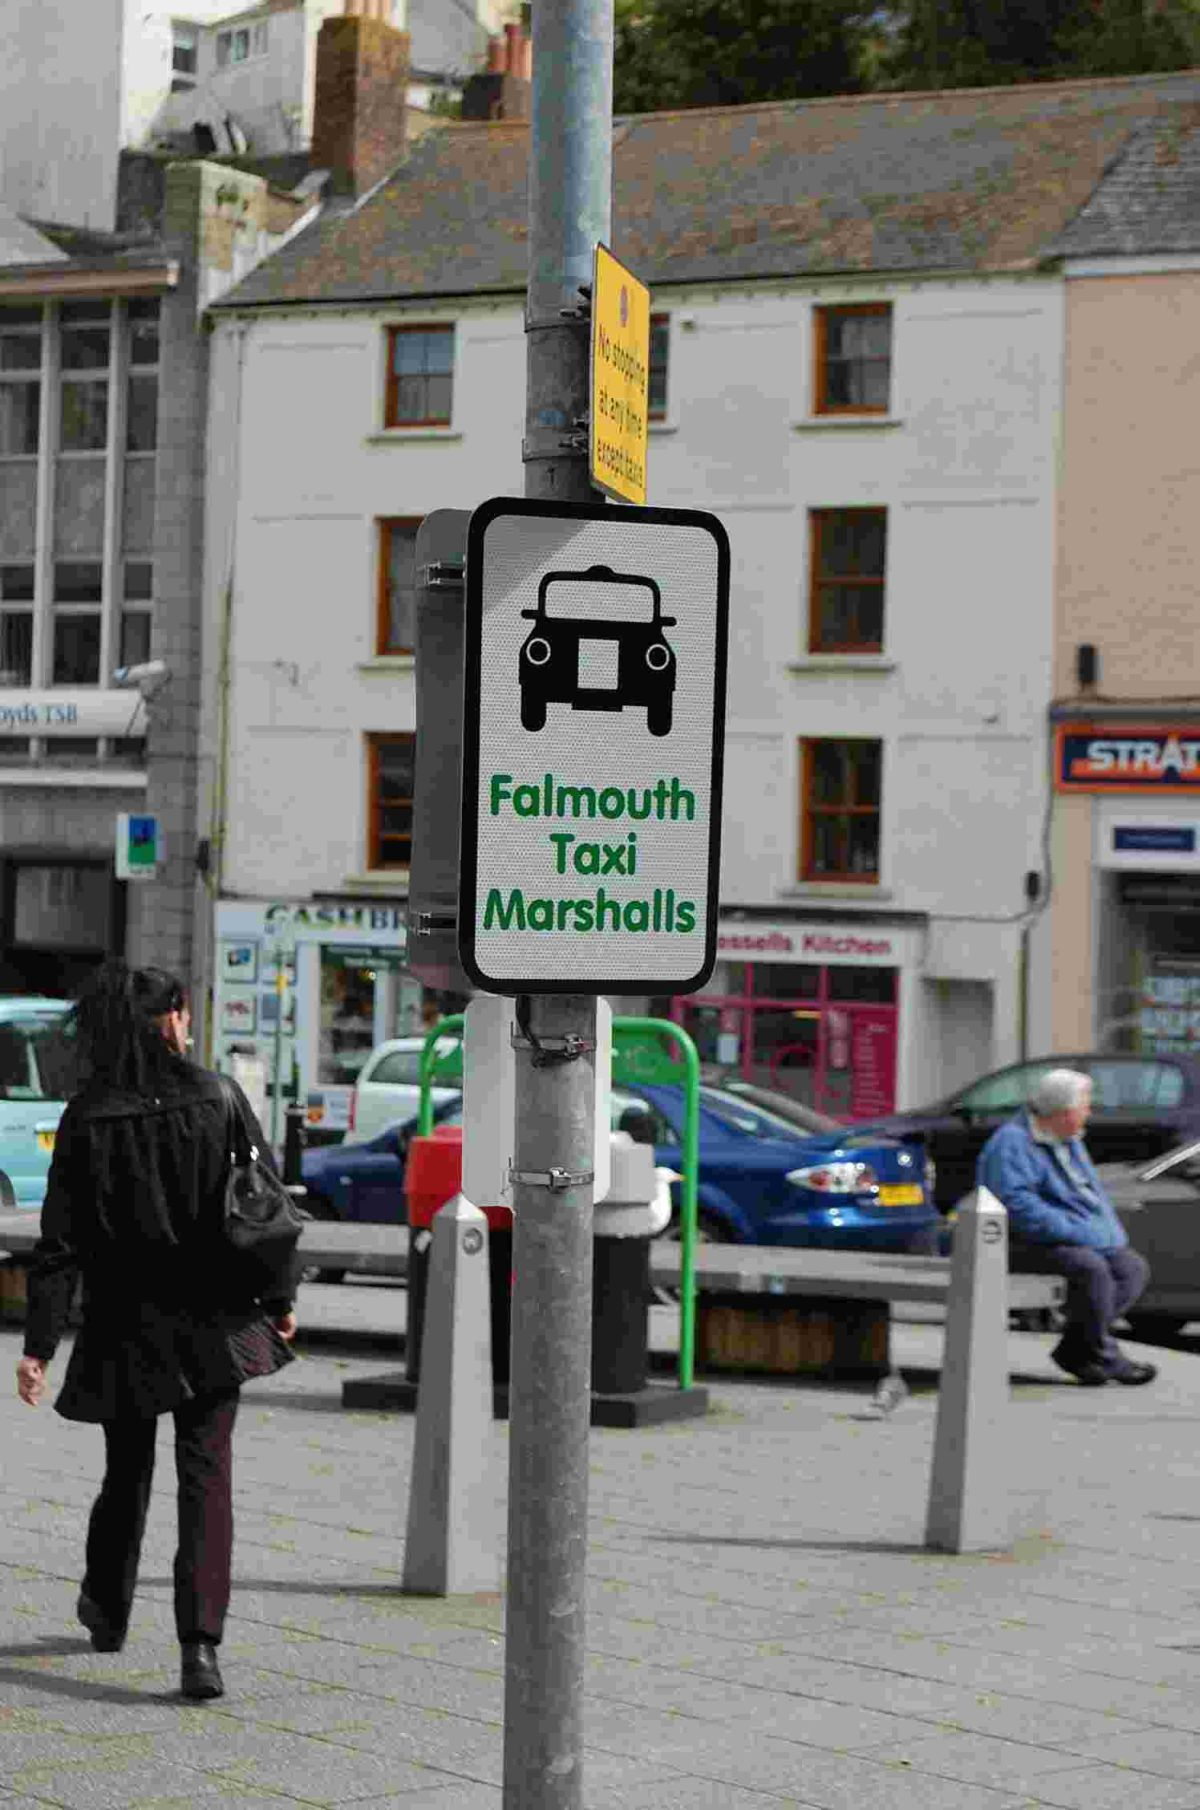 Crime fears as plug is pulled on Falmouth taxi marshalls